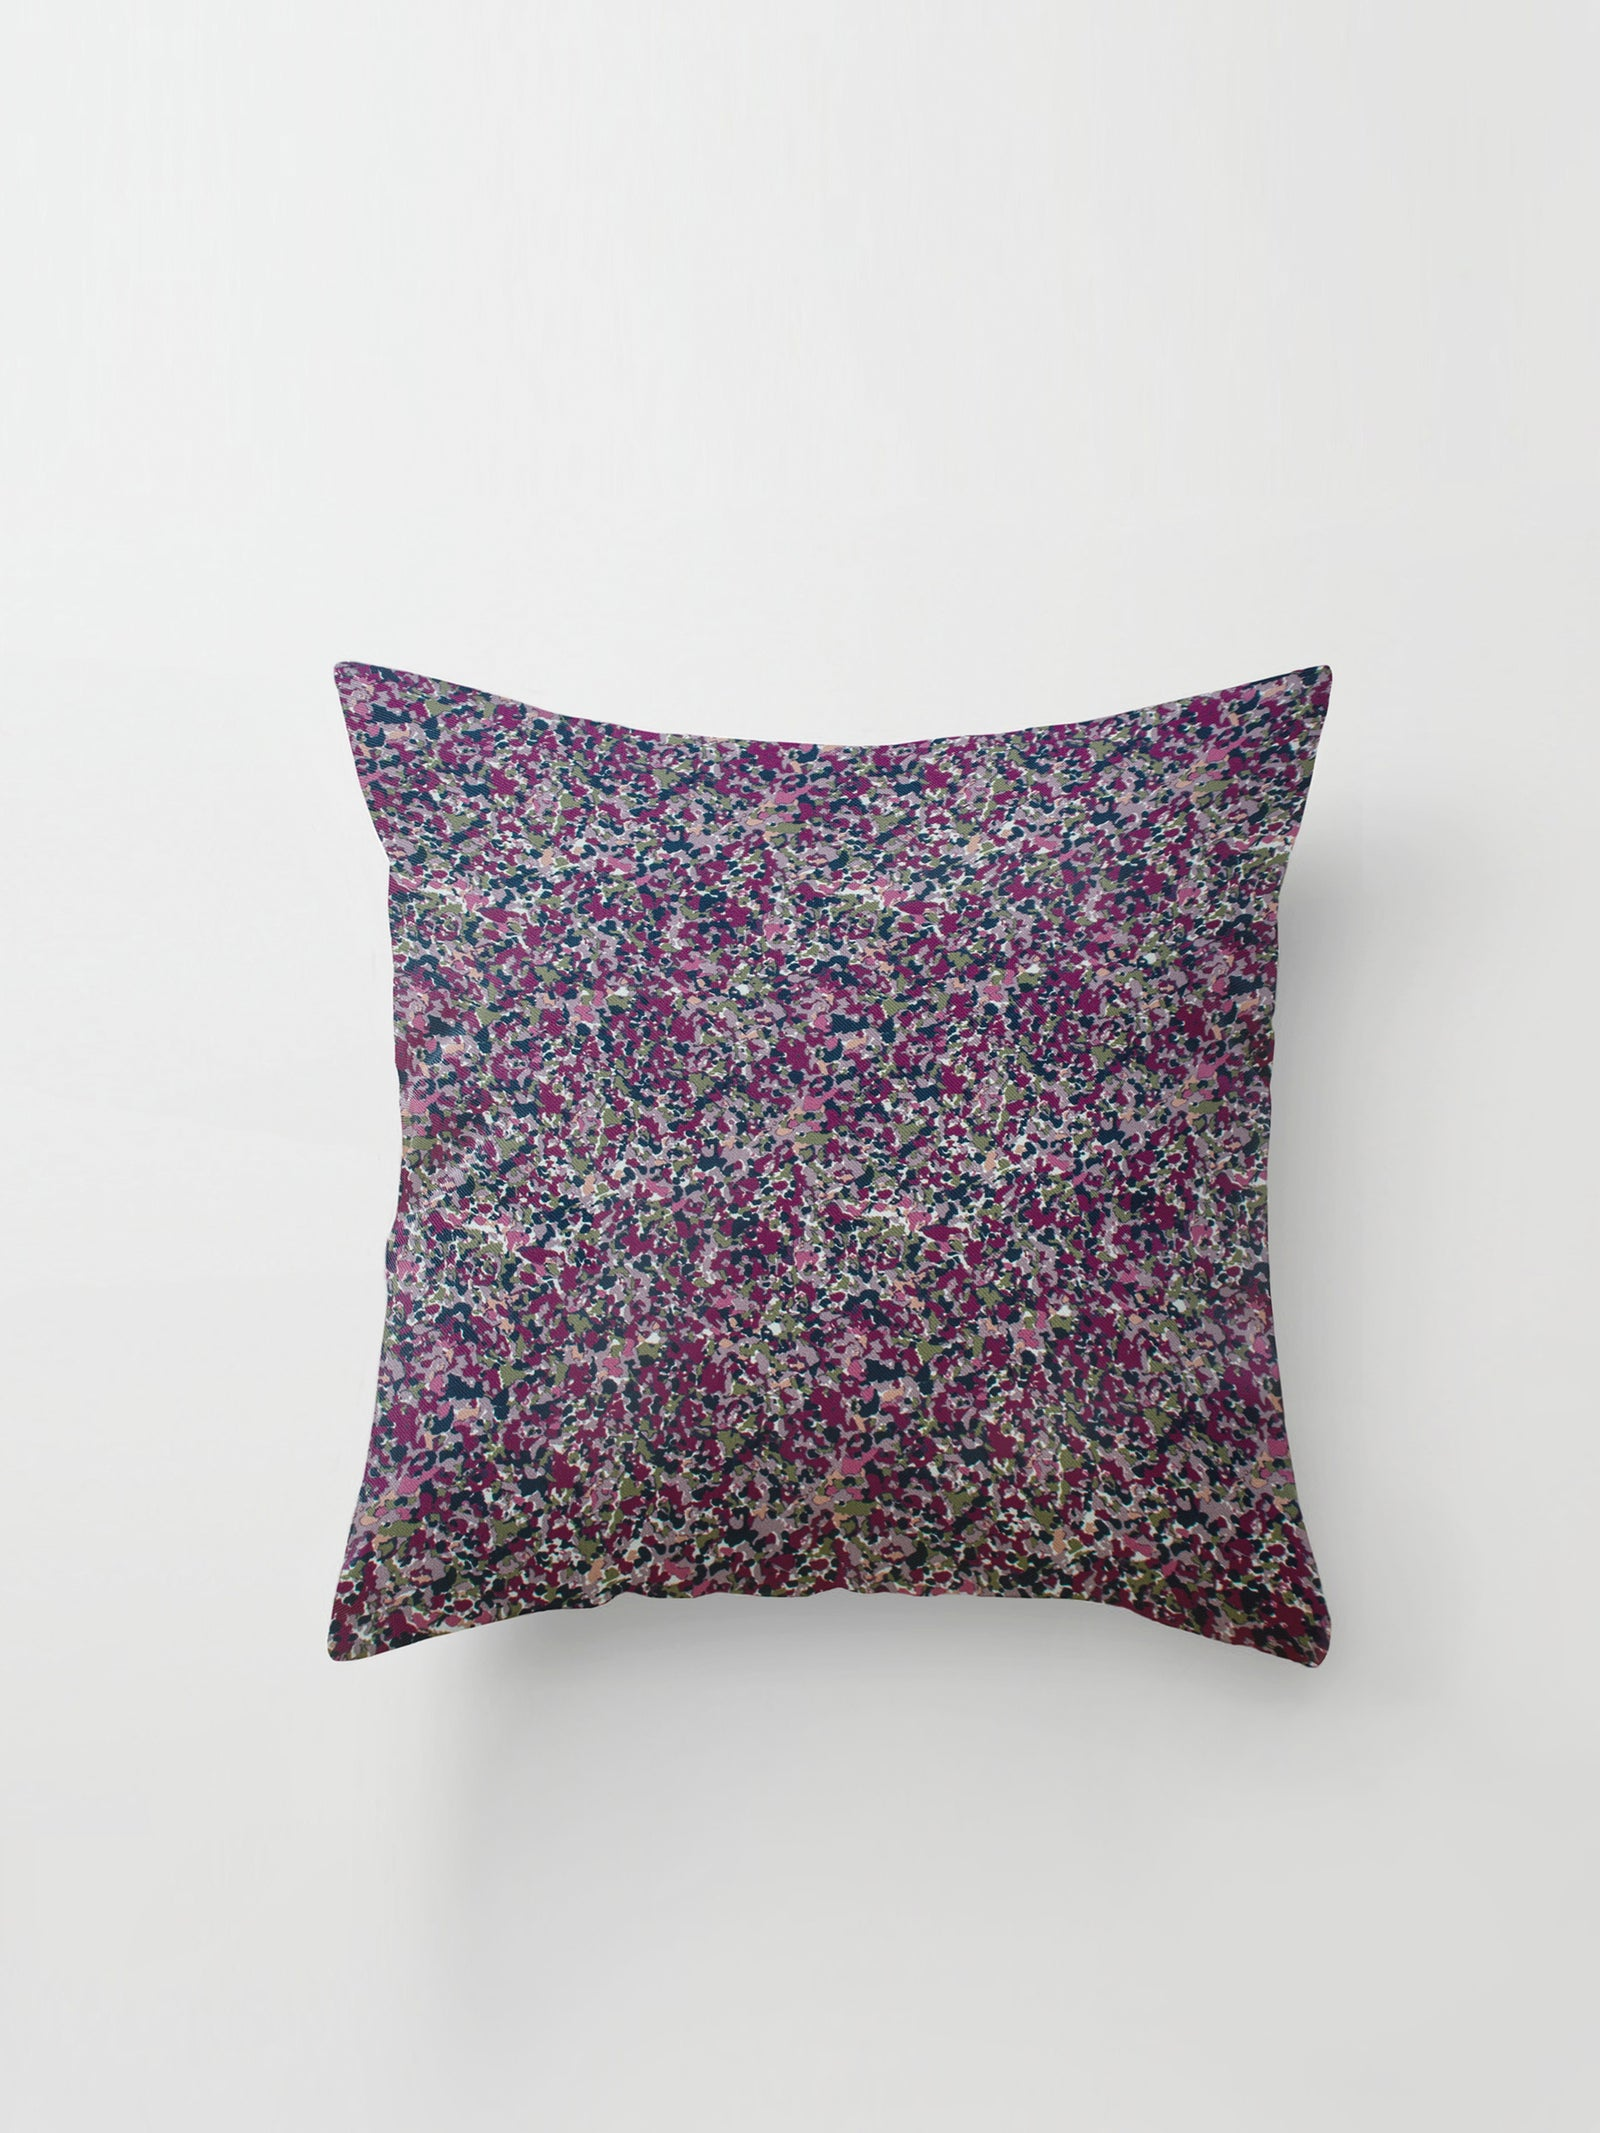 Medium Cushion Cover (Floral Haze) Blackberry